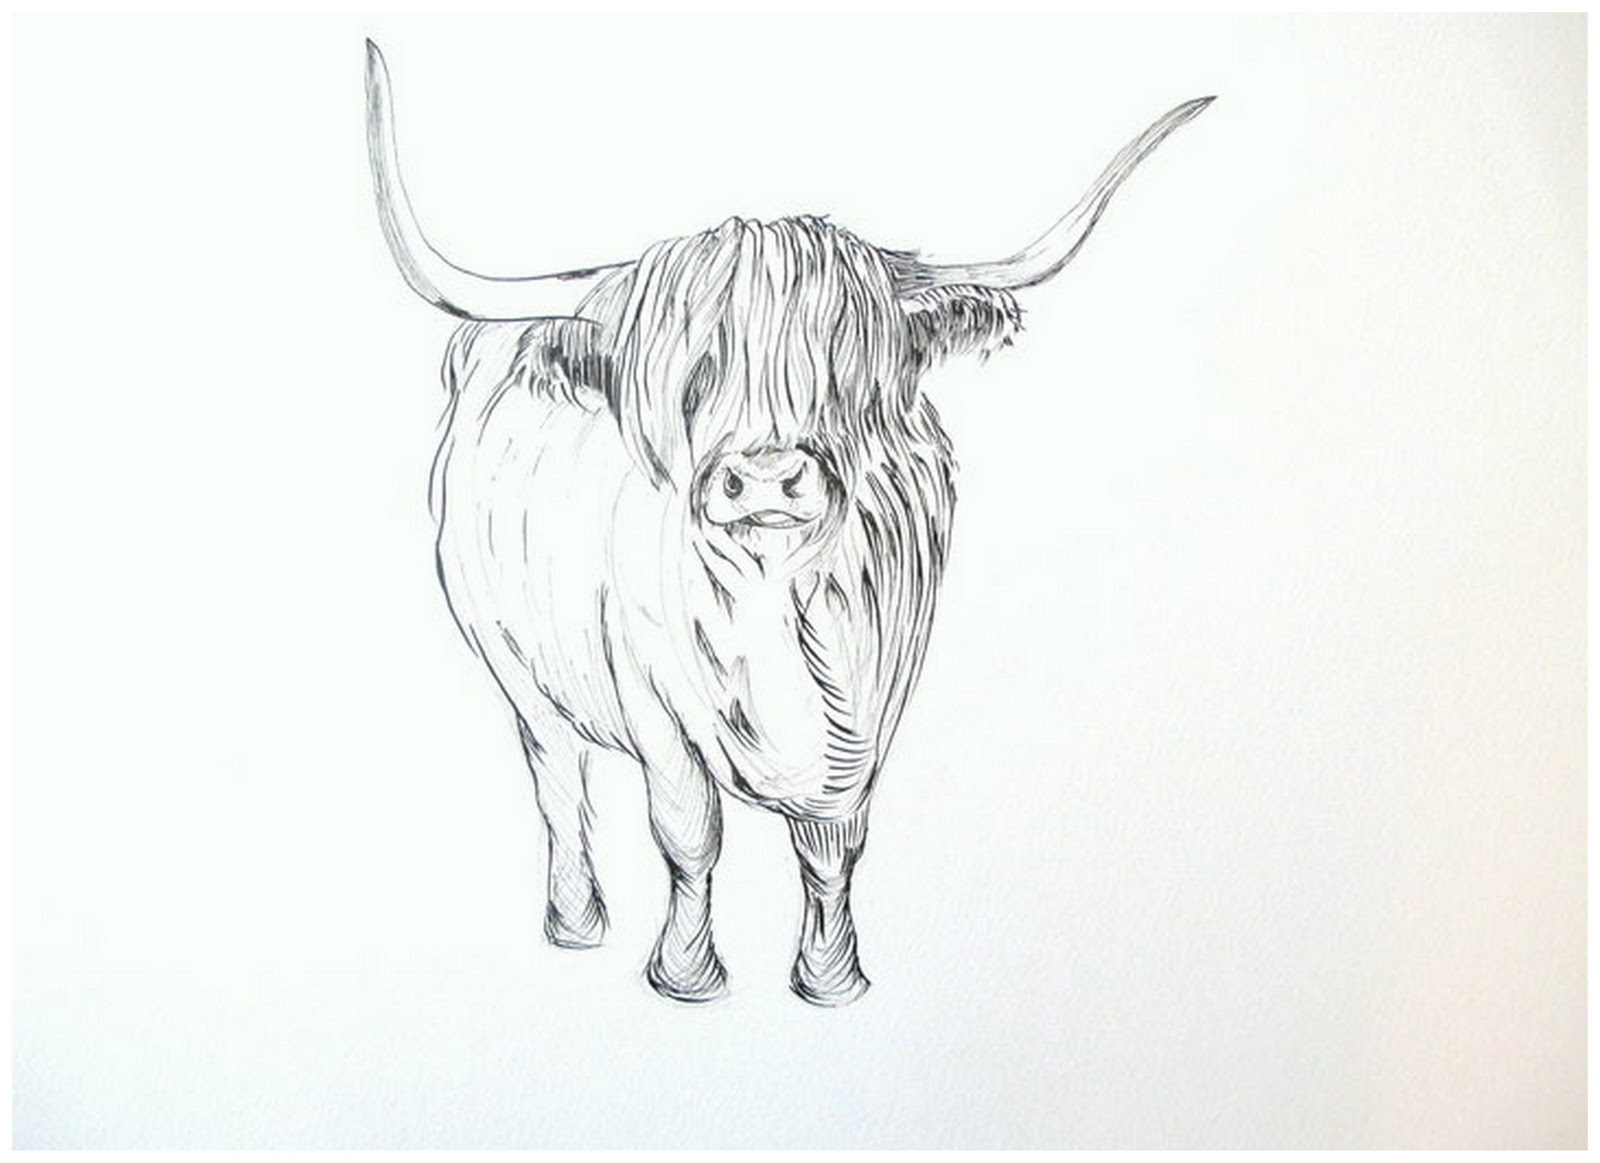 Cow clipart scottish Sketches like Cow cow Drawings